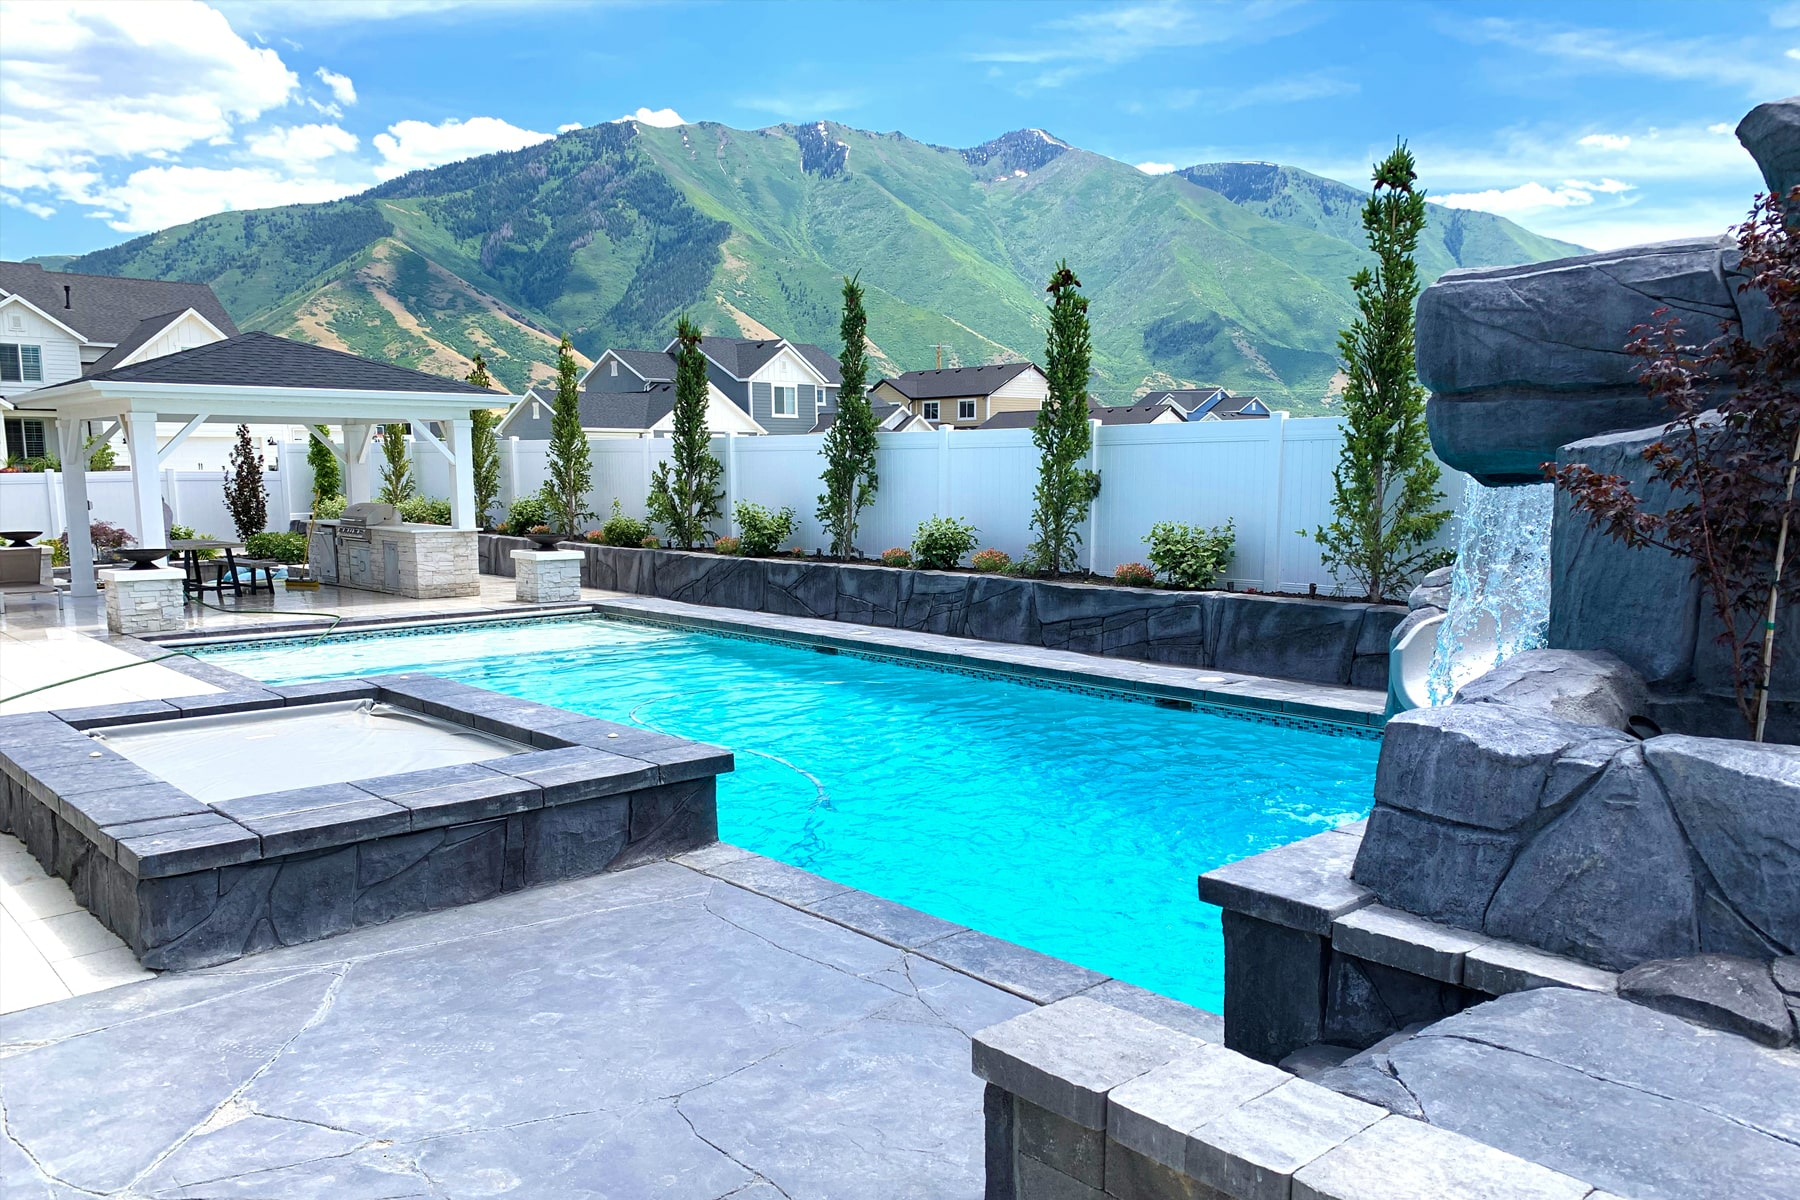 Should I Get a Custom Pool? 5 Things You Should Know